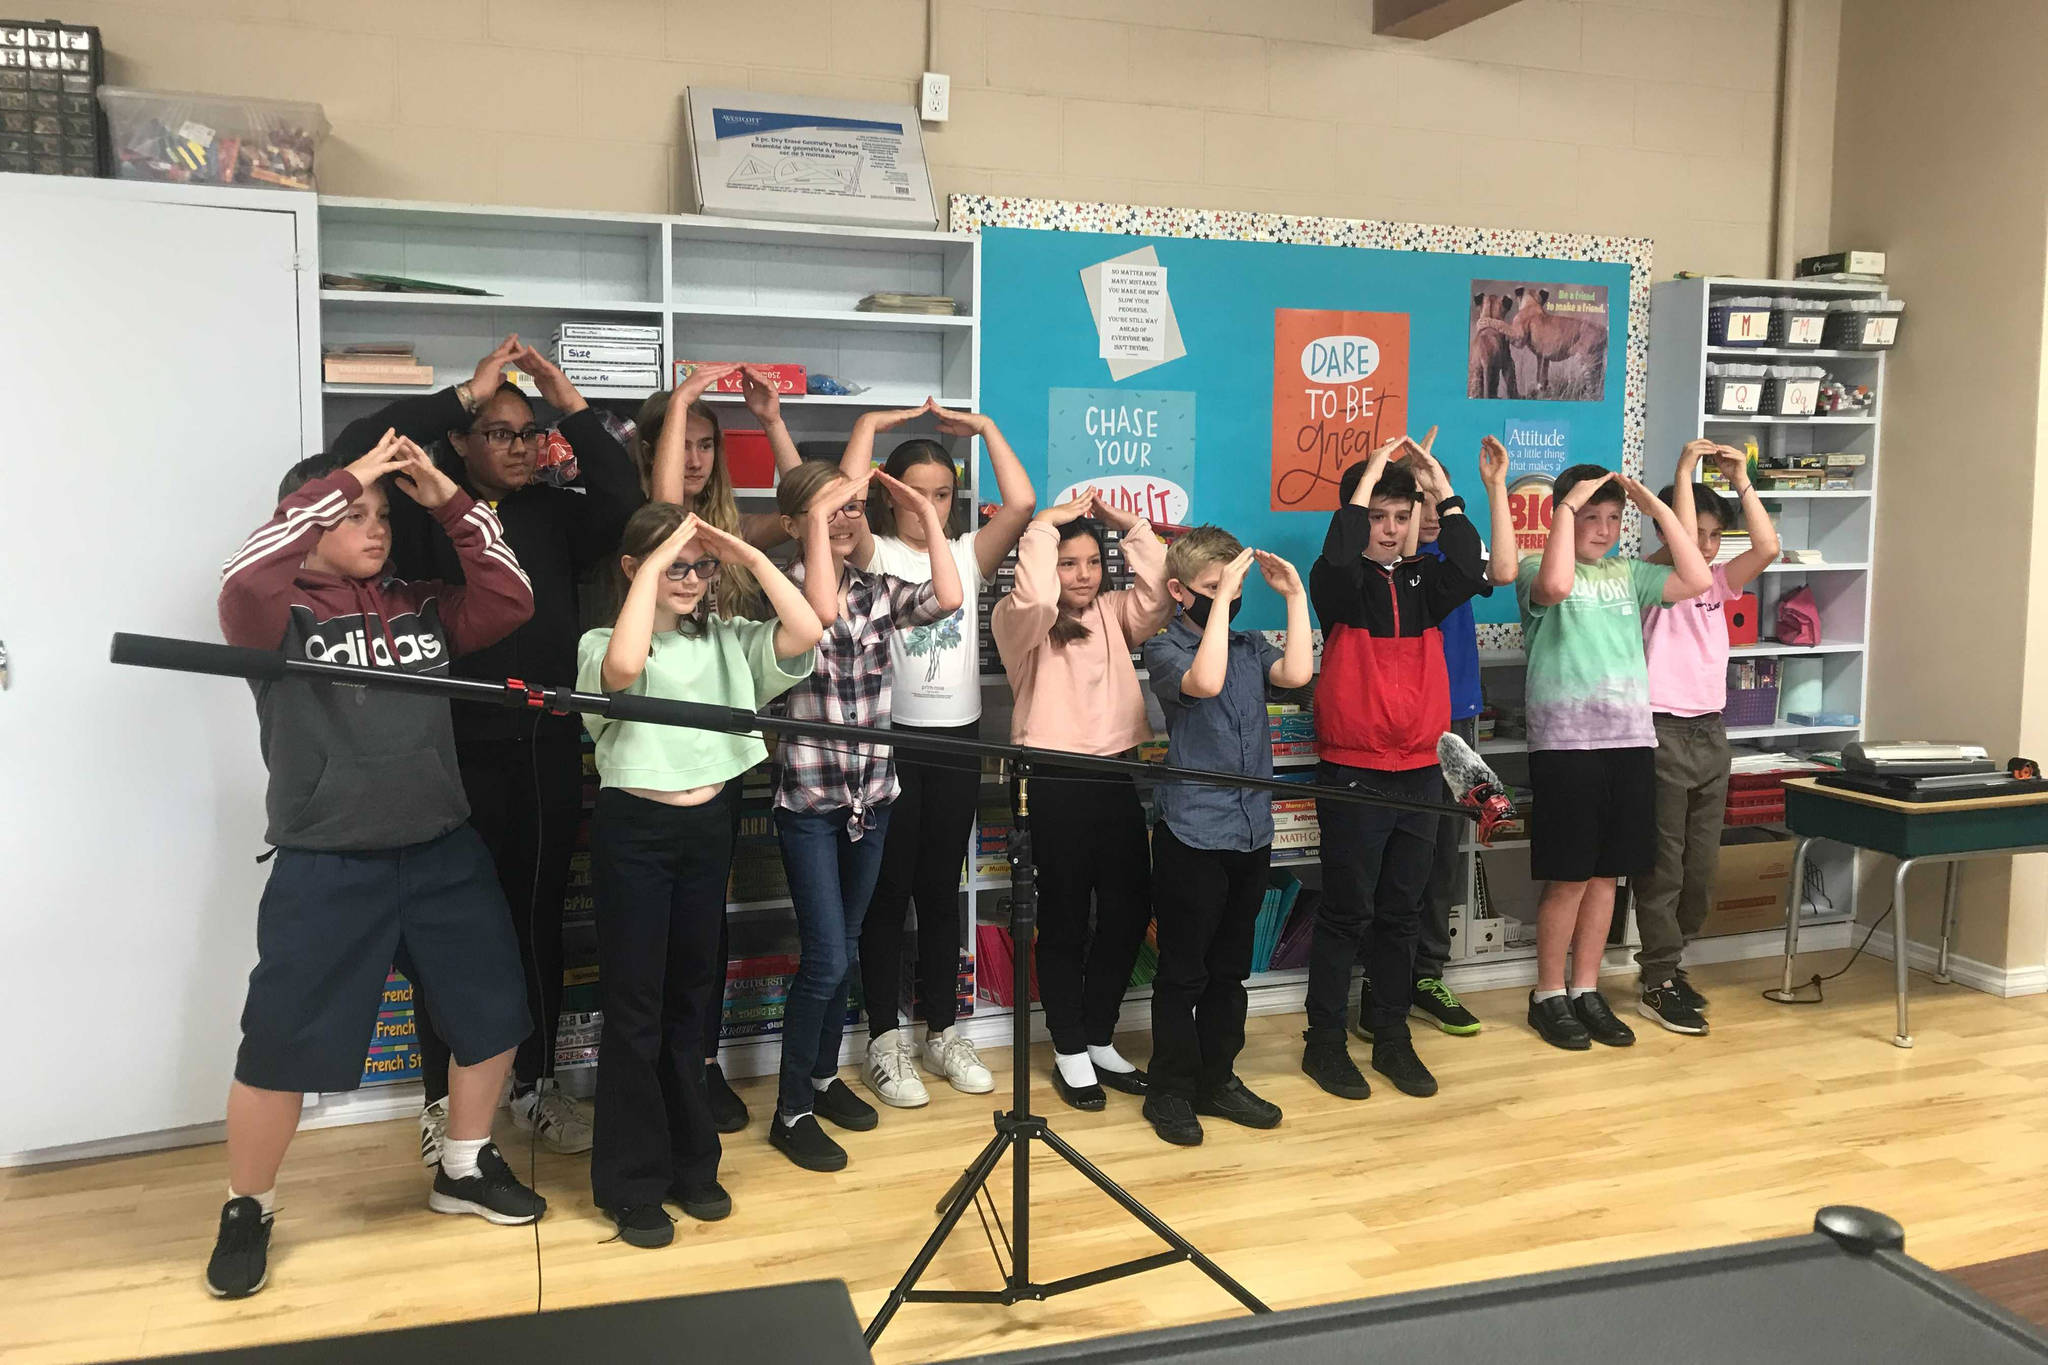 """Students make a """"tiny home"""" sign with their hands as part of the Tiny Home Challenge at John Paul II Catholic School. (ELENA RARDON / ALBERNI VALLEY NEWS)"""